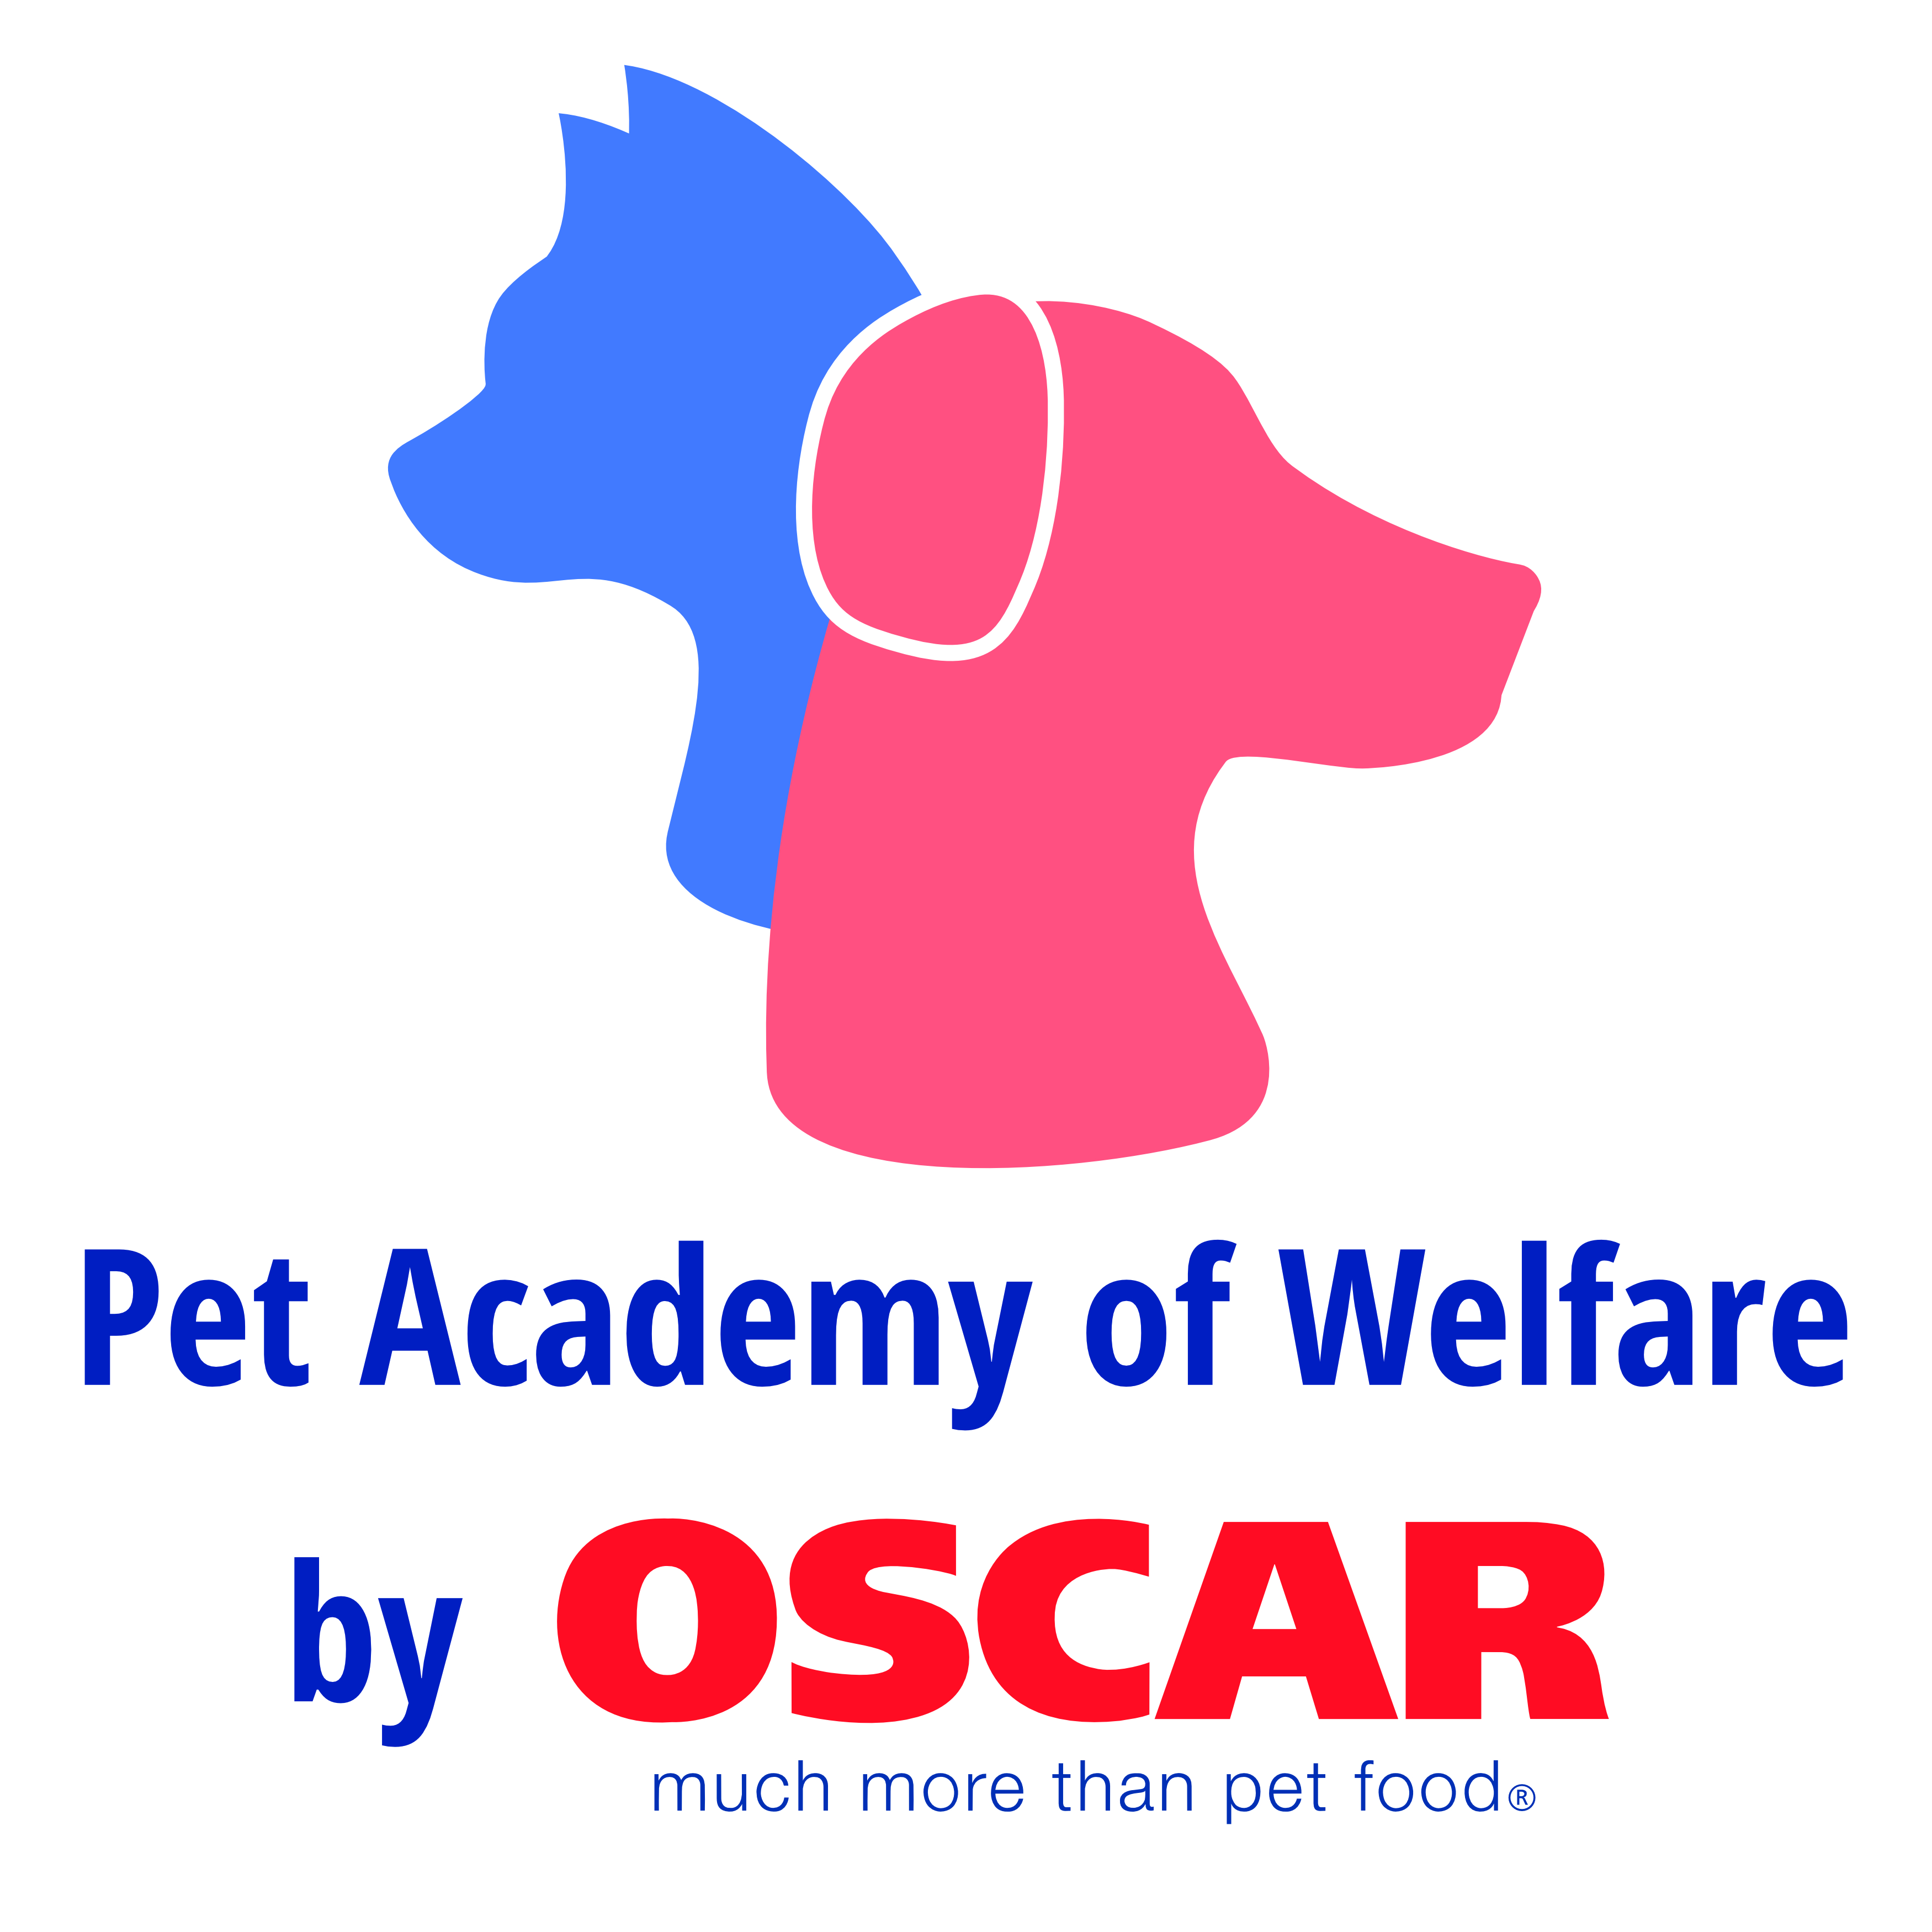 OSCAR Pet Foods are launching the pet industry's first-ever Academy of Pet Welfare